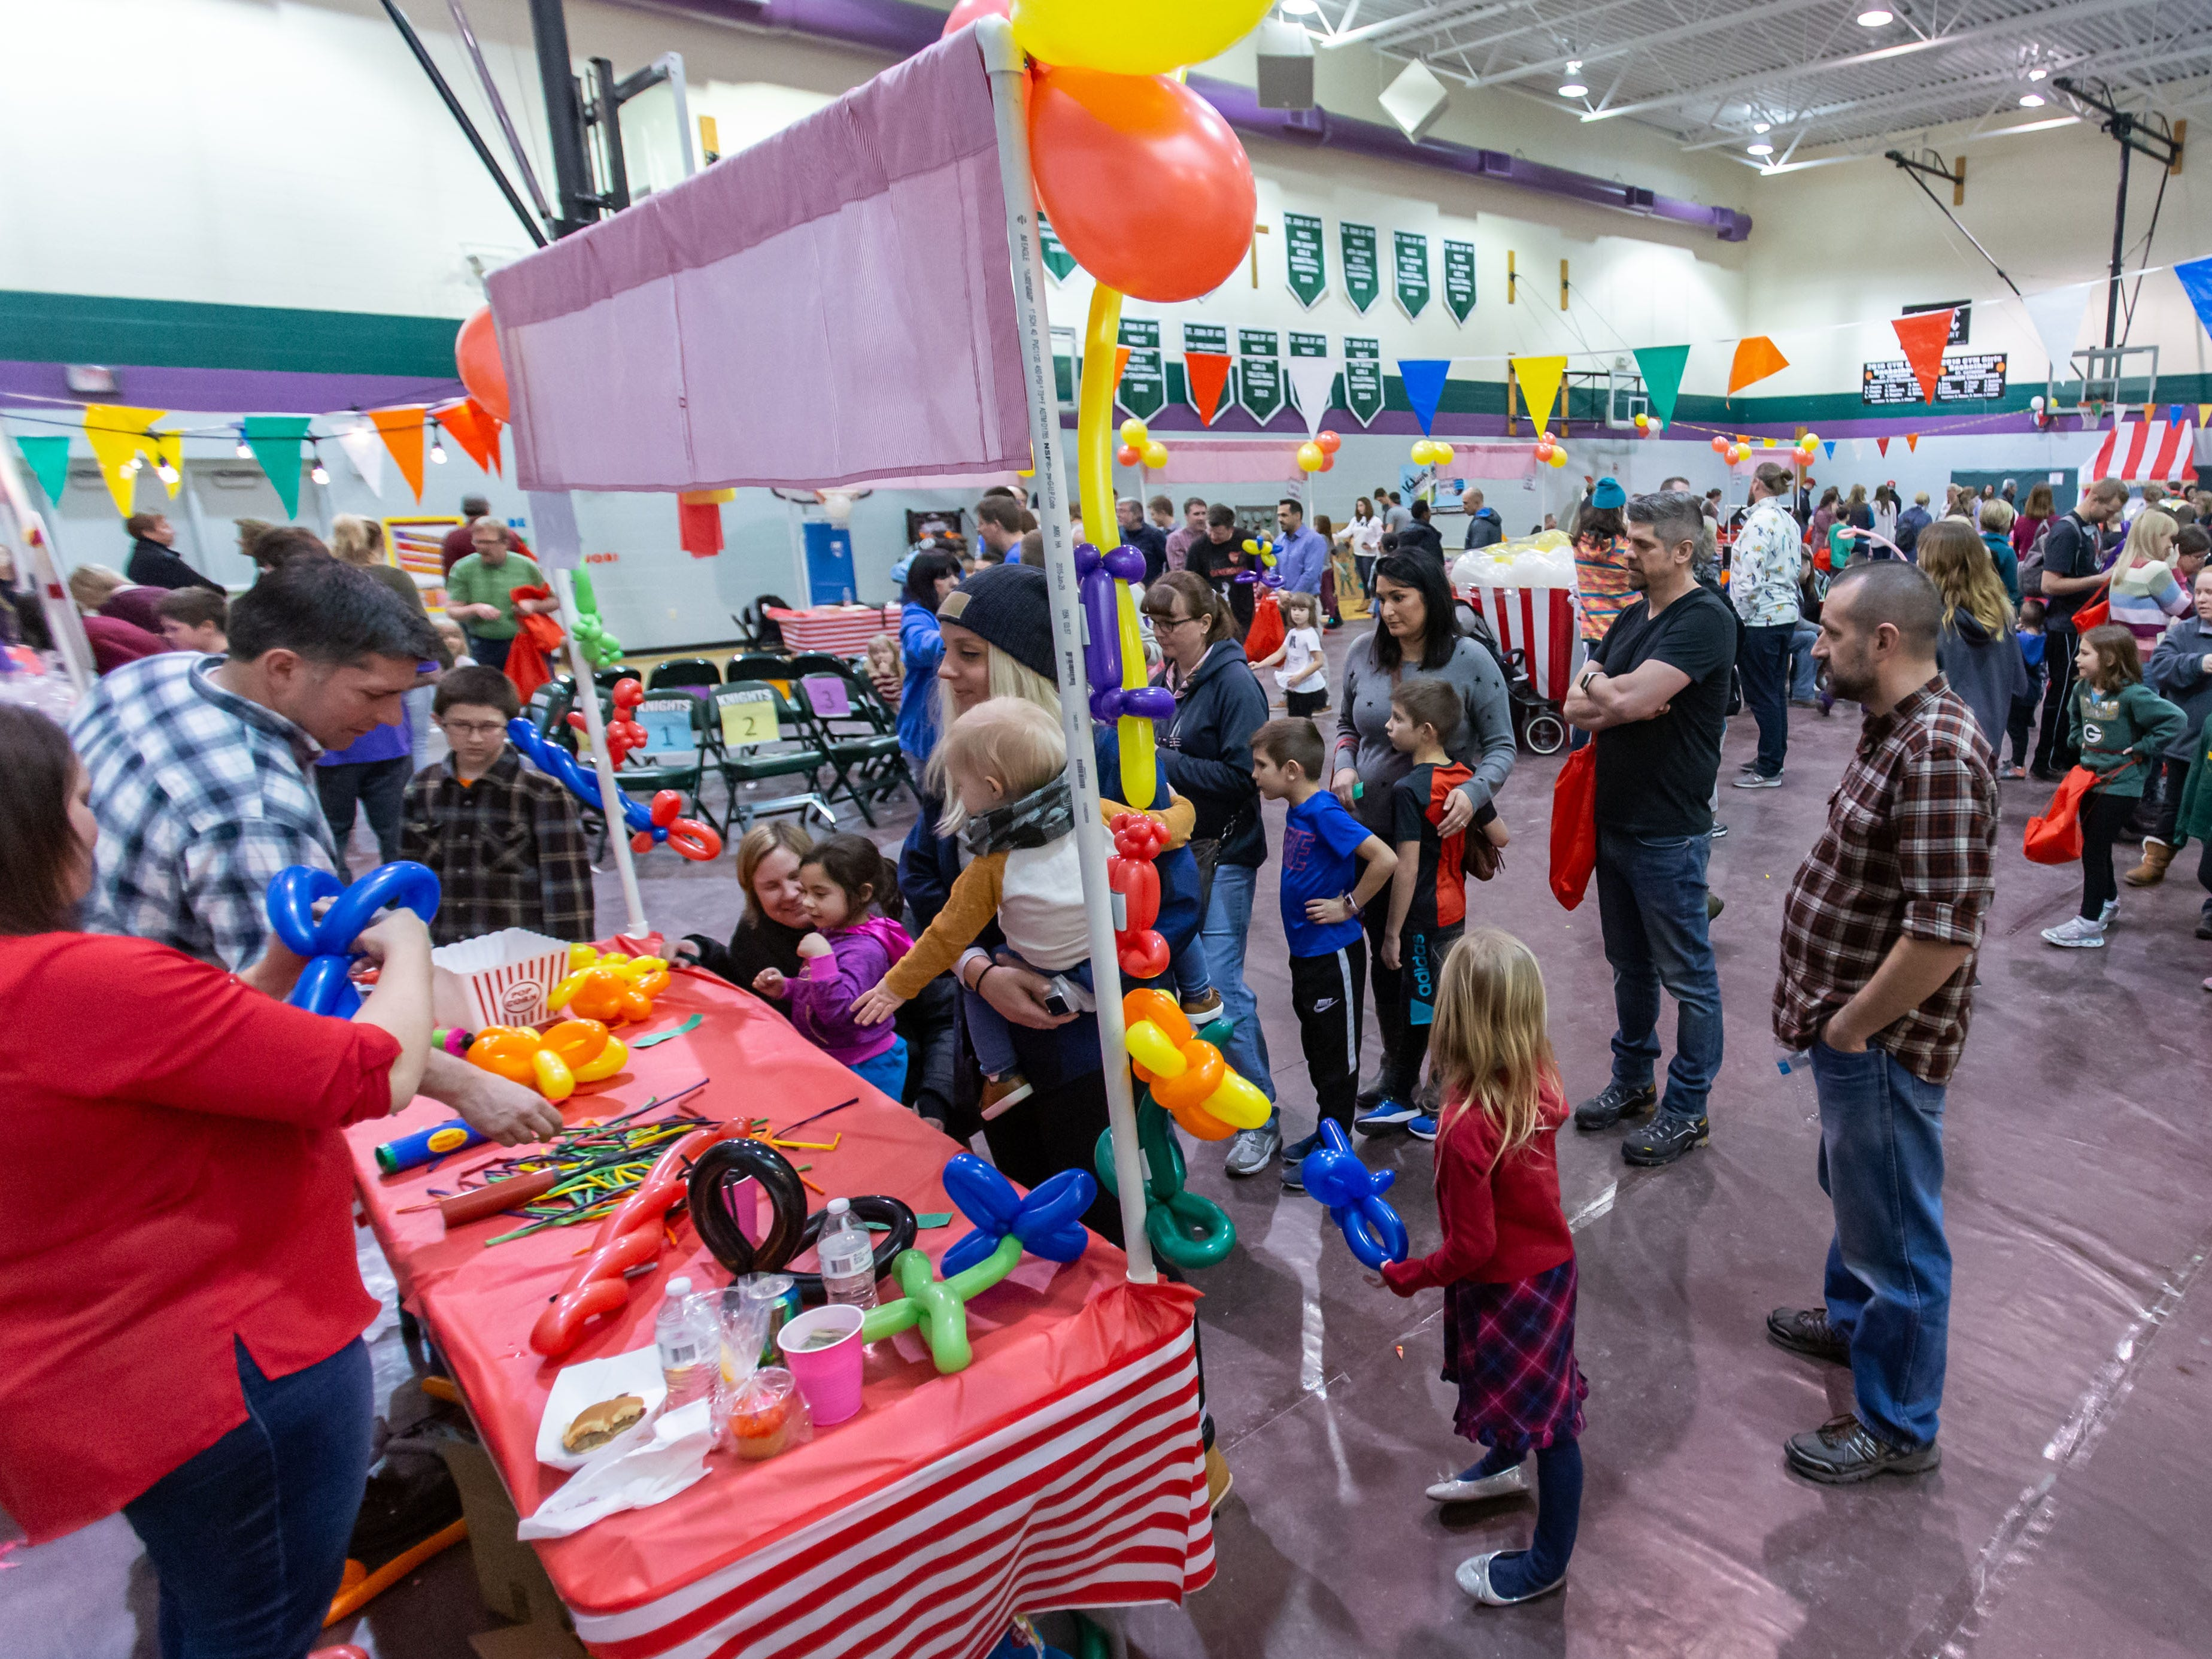 Youngsters gather round the balloon table for a custom creation during the 9th annual St. Joan of Arc Carnival in Nashotah on Friday, Feb. 1, 2019. The family-friendly event features carnival games, food, face painting, balloon animals, a fortune teller and more.